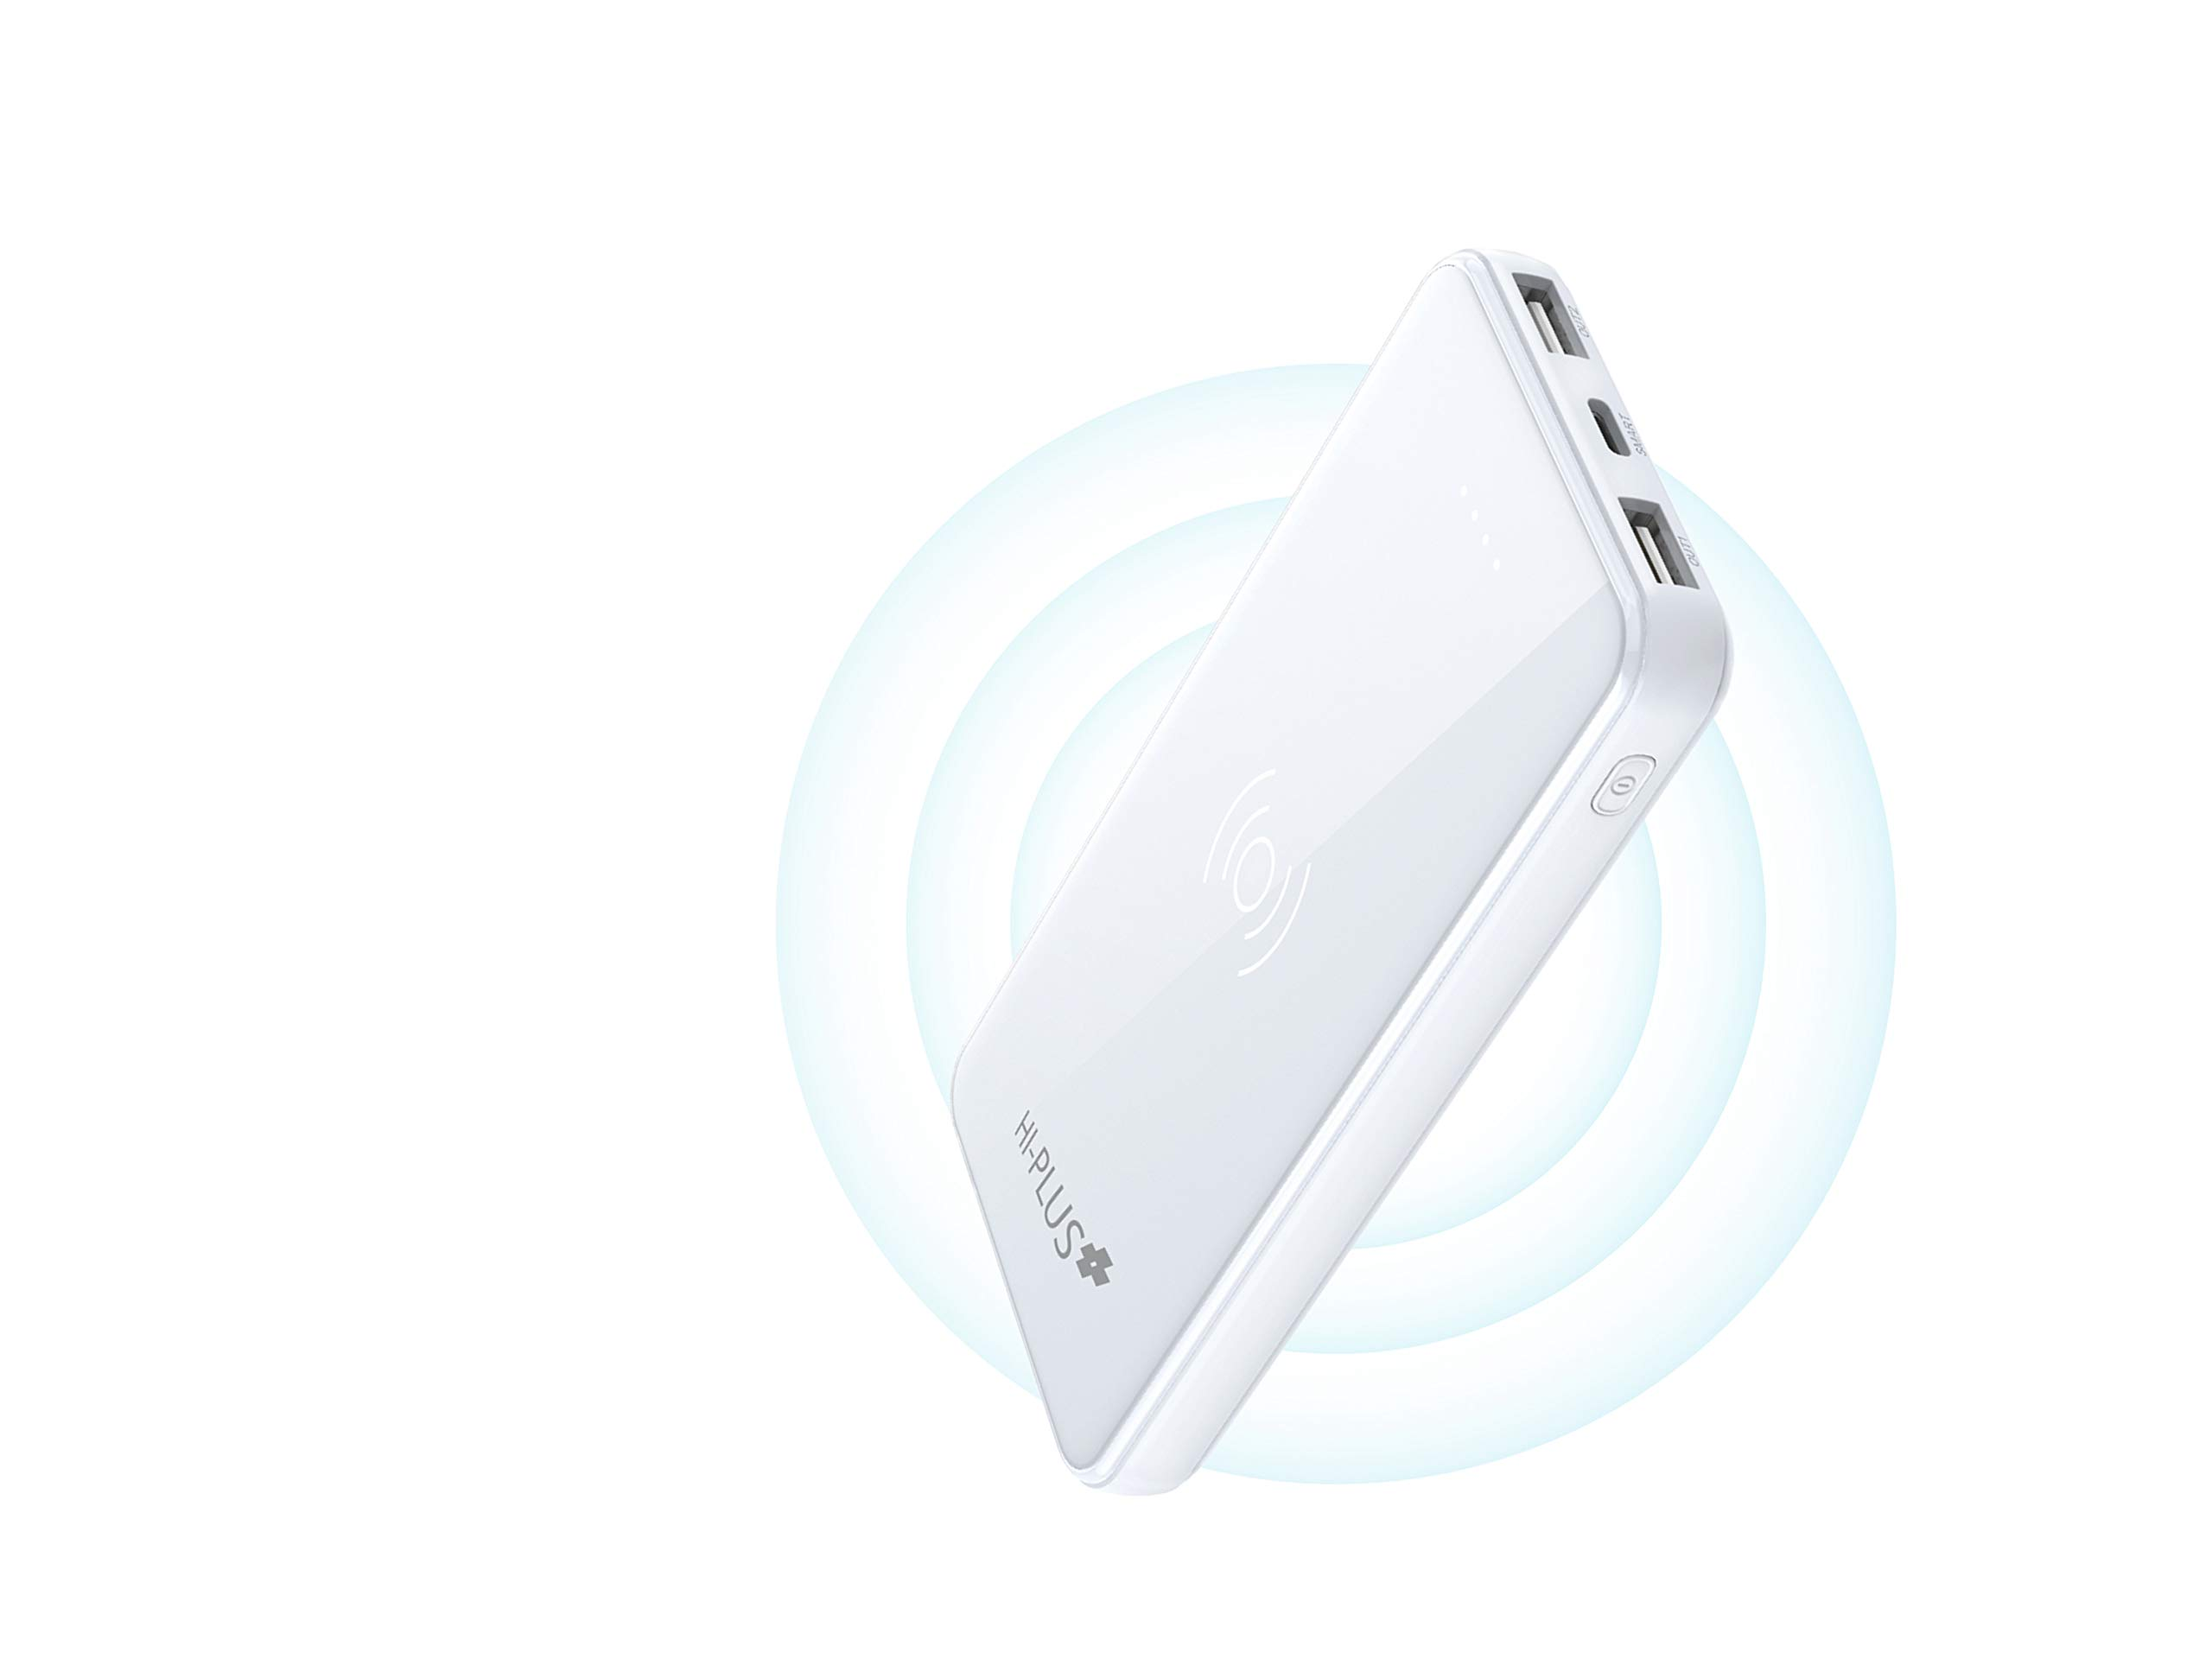 Wireless Mobile Charger Power Bank 10000 mAh